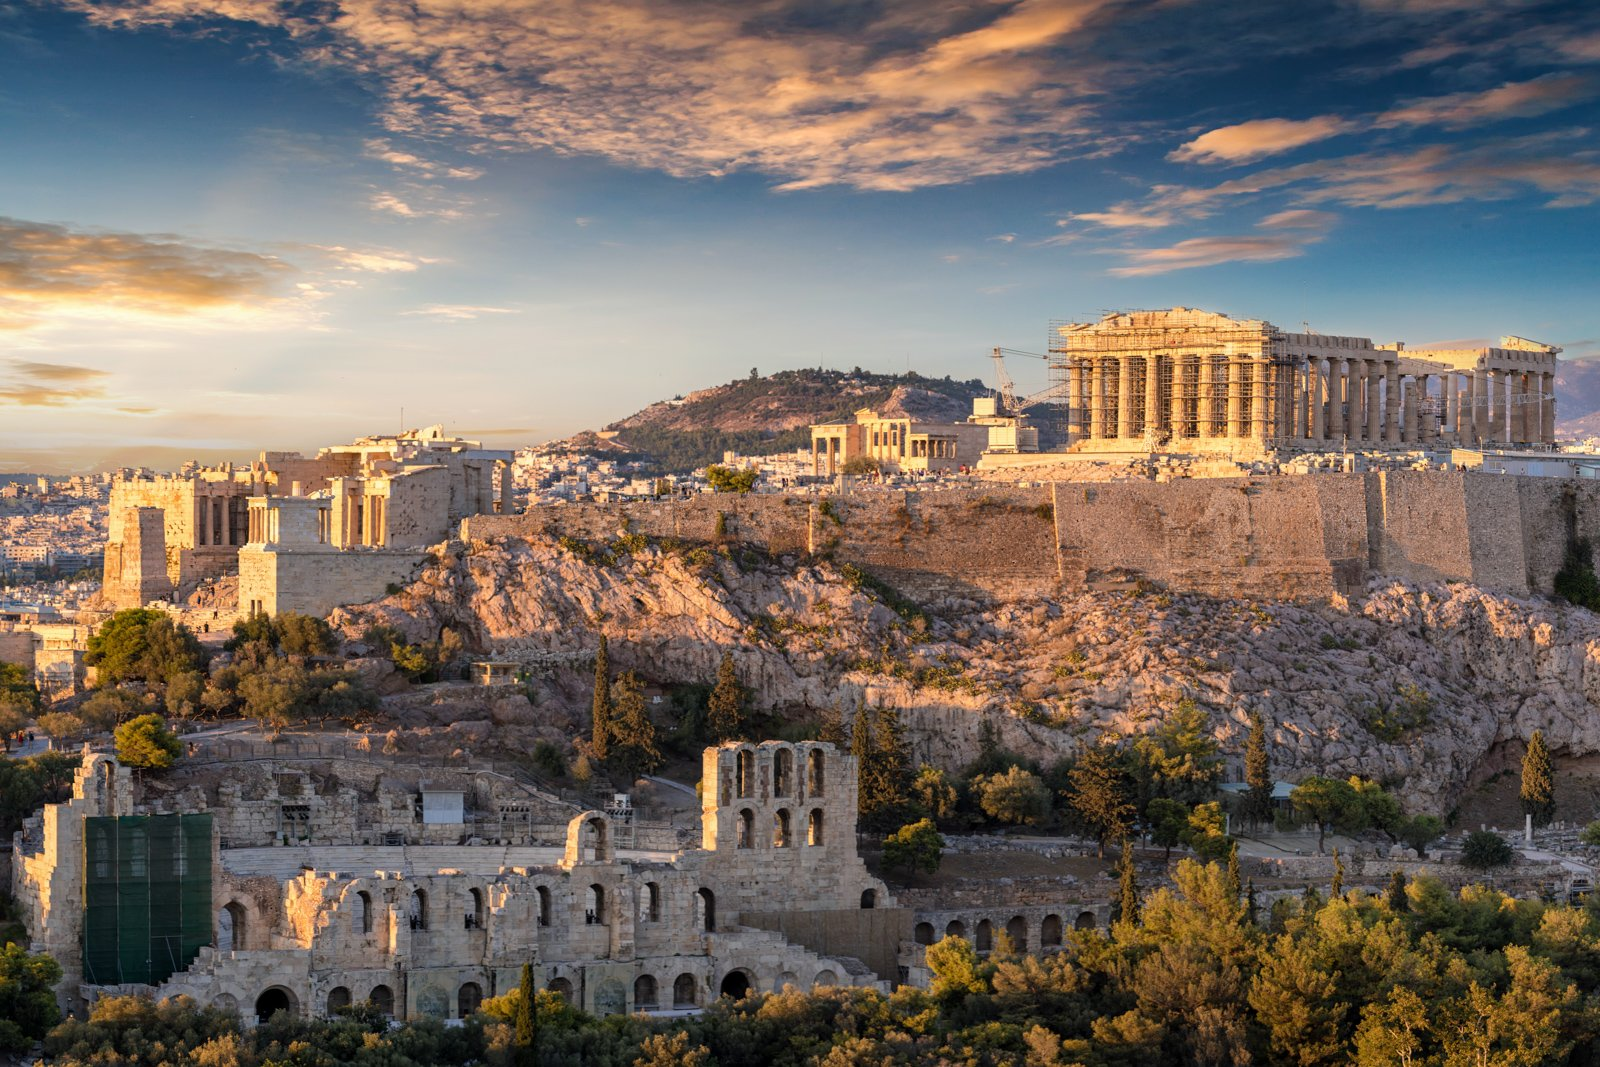 What to do in Athens Greece Acropolis and what to see in athens landmarks. The Acropolis of Athens, Greece, with the Parthenon Temple during sunset